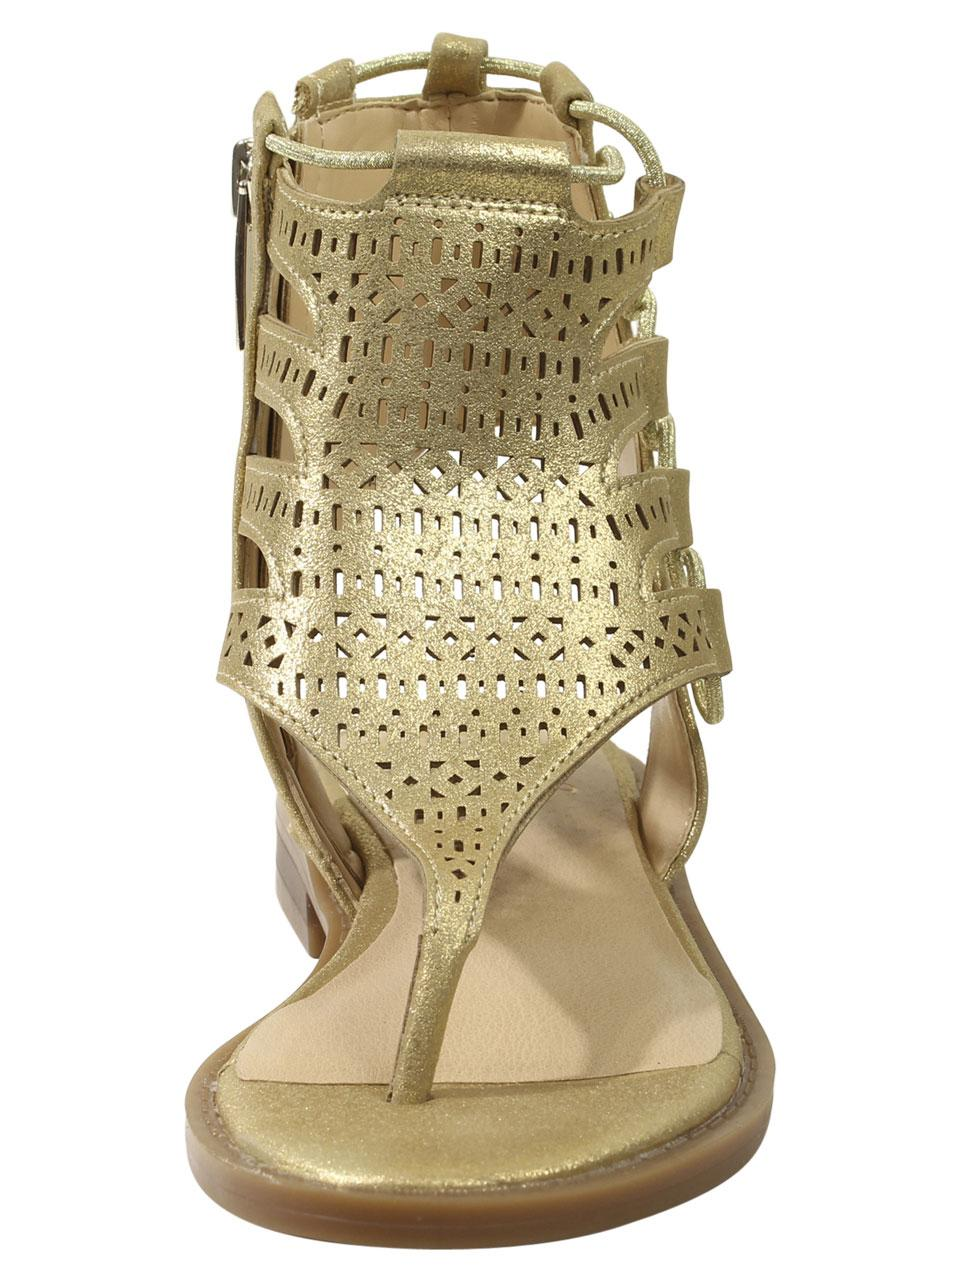 0909682cad98 Vince Camuto Little Big Girl s Juli Perforated Gladiator Sandals Shoes by Vince  Camuto